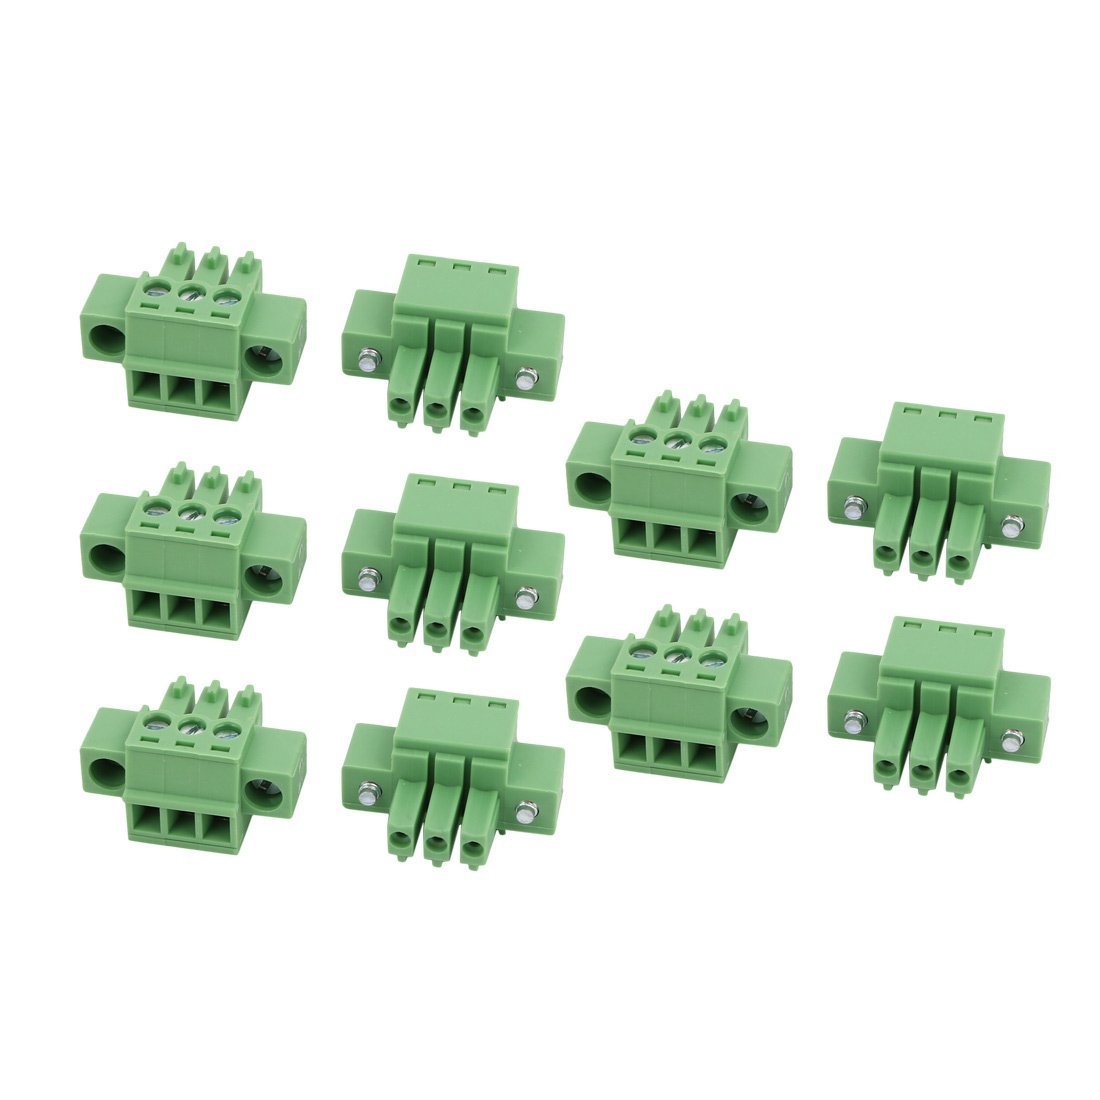 uxcell 10Pcs LC1M AC300V 8A 3.5mm Pitch 3P PCB Terminal Block Wire Connection